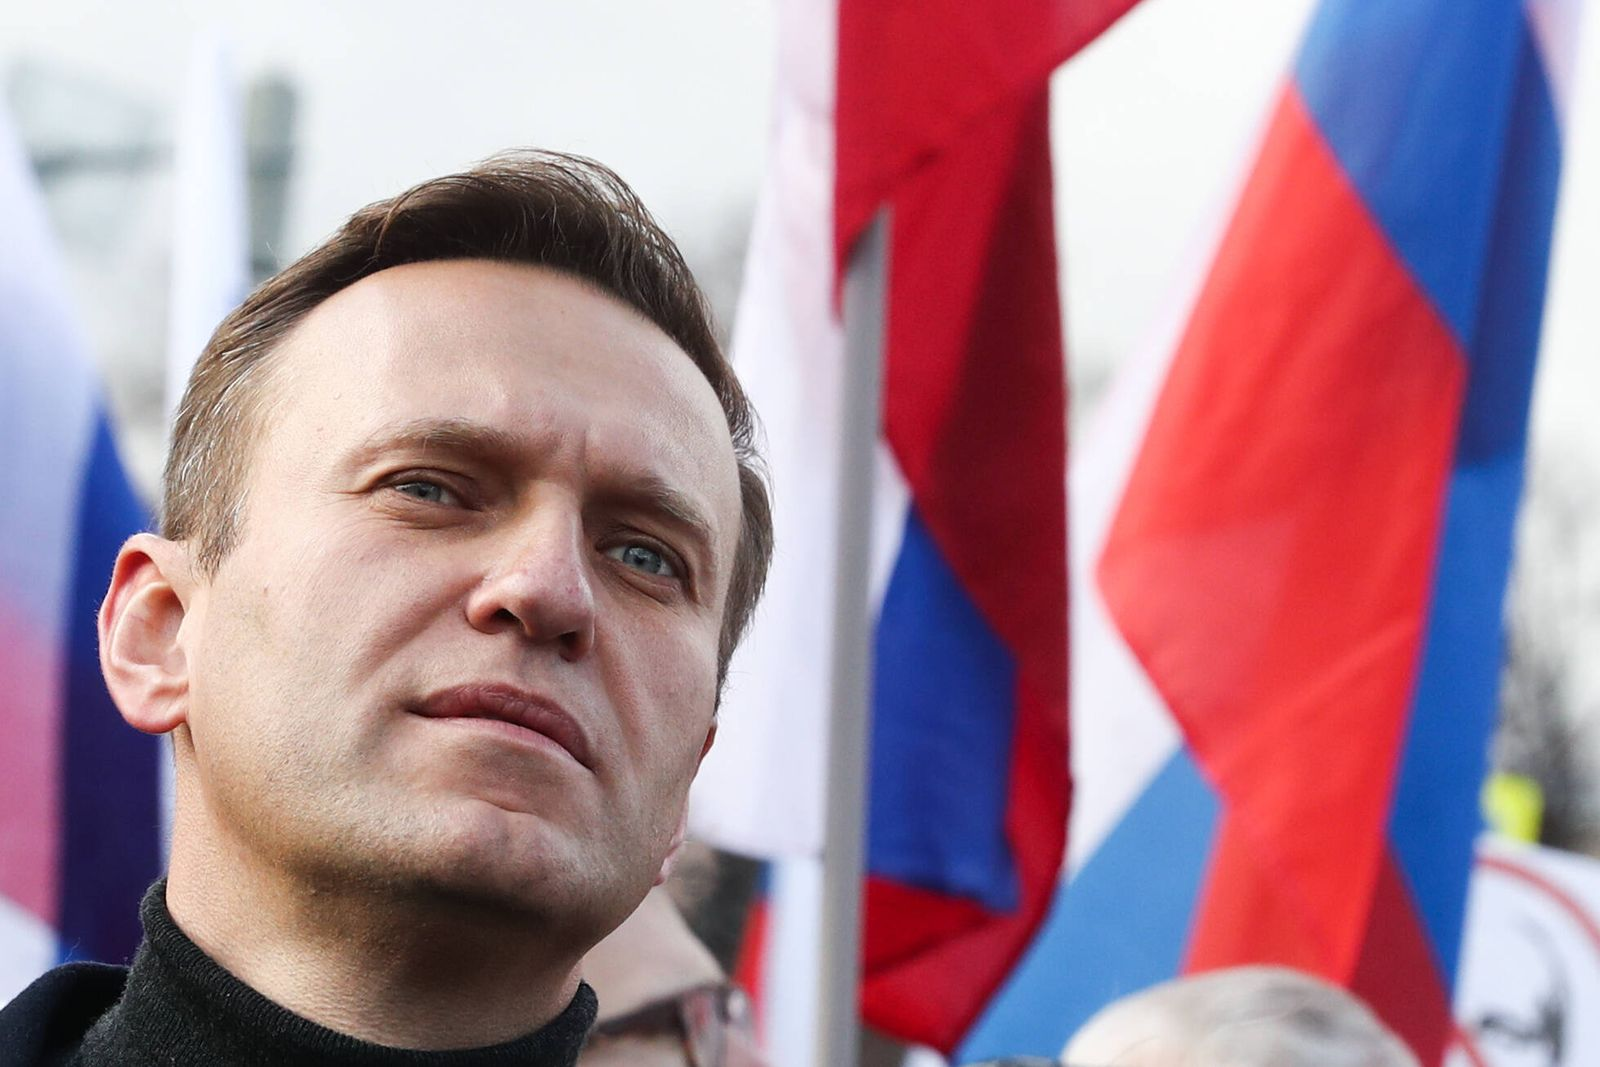 MOSCOW, RUSSIA - FEBRUARY 29, 2020: Opposition activist Alexei Navalny takes part in a memorial march marking the 5th a